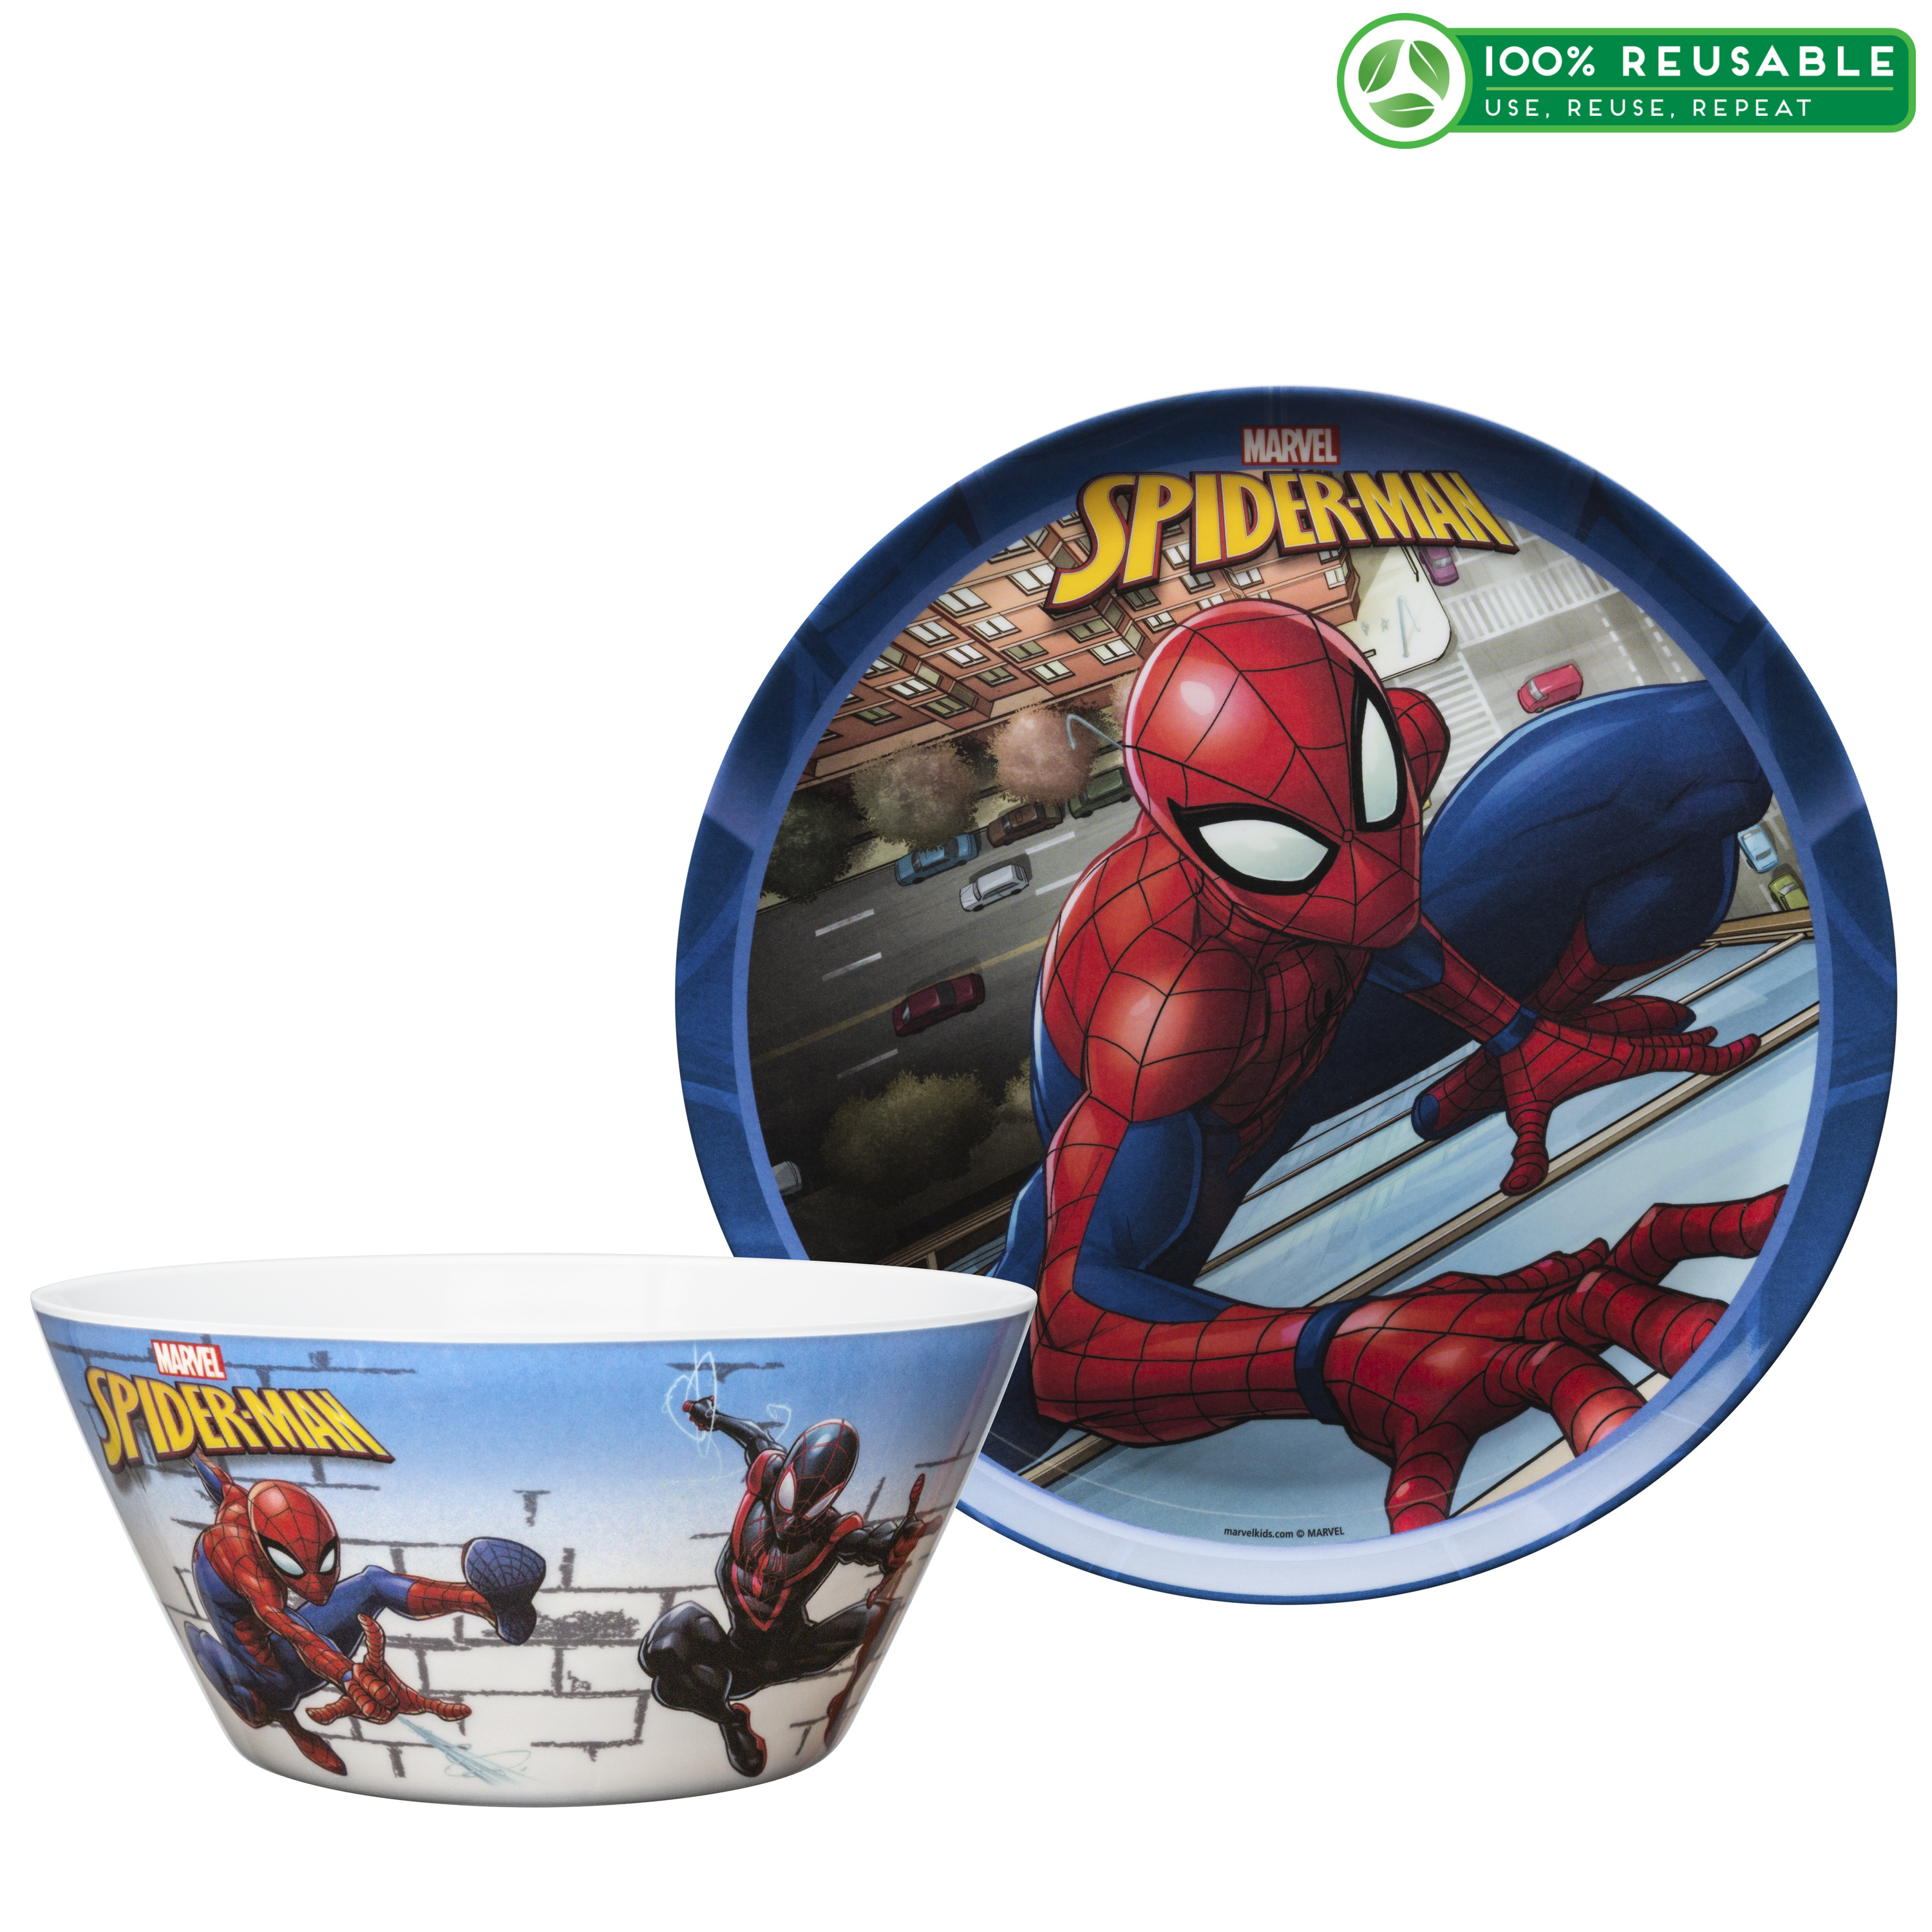 Marvel Comics Dinnerware Set, Spider-Man, 2-piece set slideshow image 1